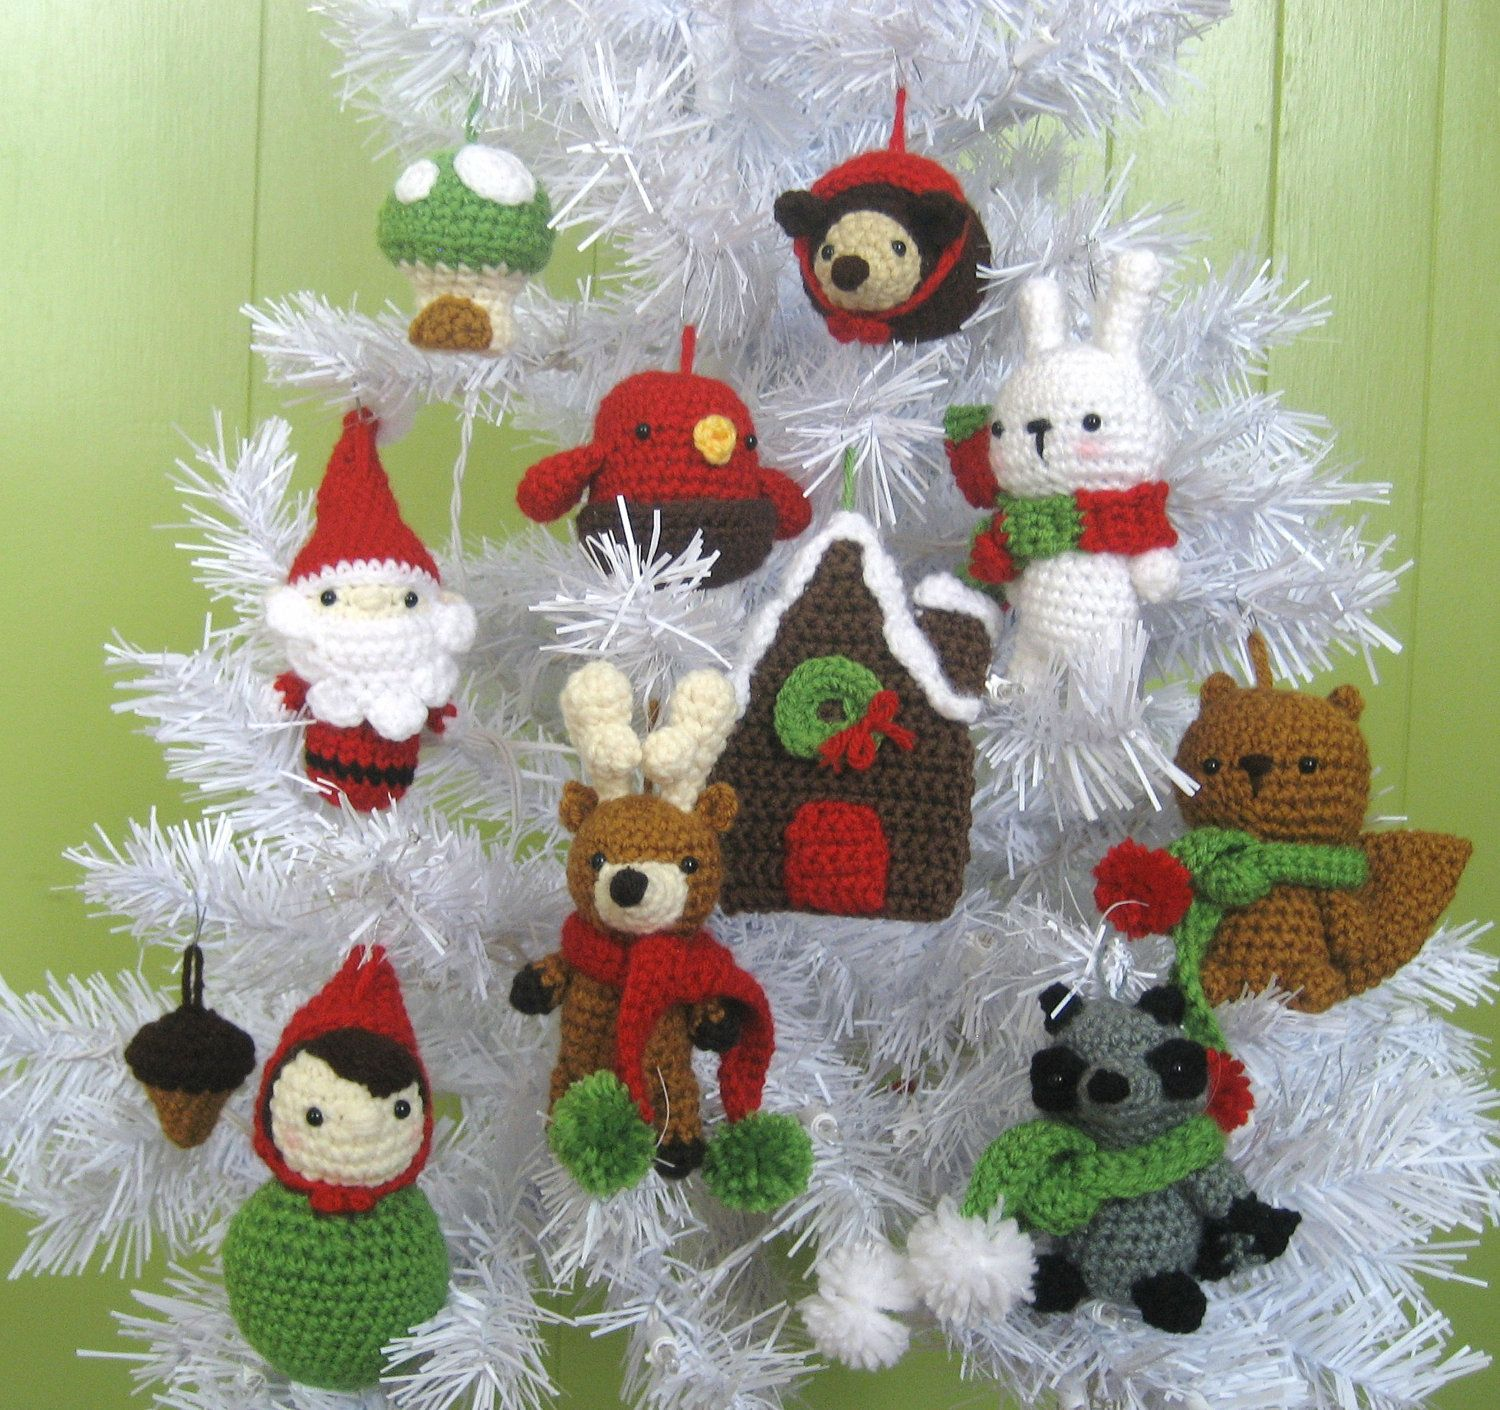 Simple Knitting Patterns Christmas Decorations : Crochet Pattern Central - Free Ornaments Crochet Pattern Link Crochet para ...